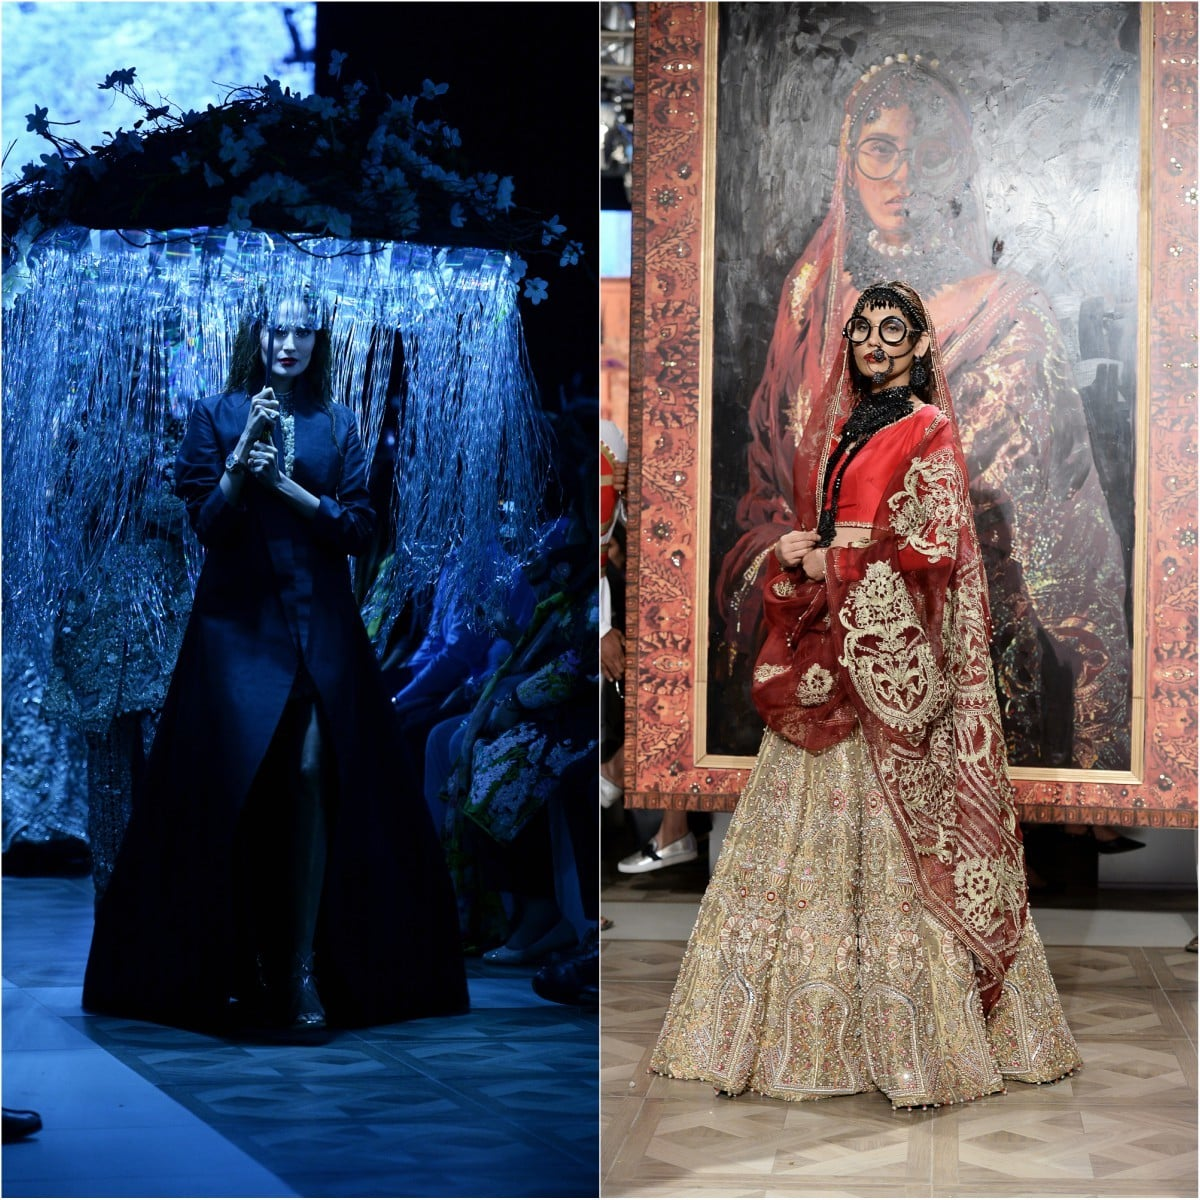 As always, Ali Xeeshan put up a memorable show. The umbrellas gave way to murals that formed the backdrop for wedding-wear